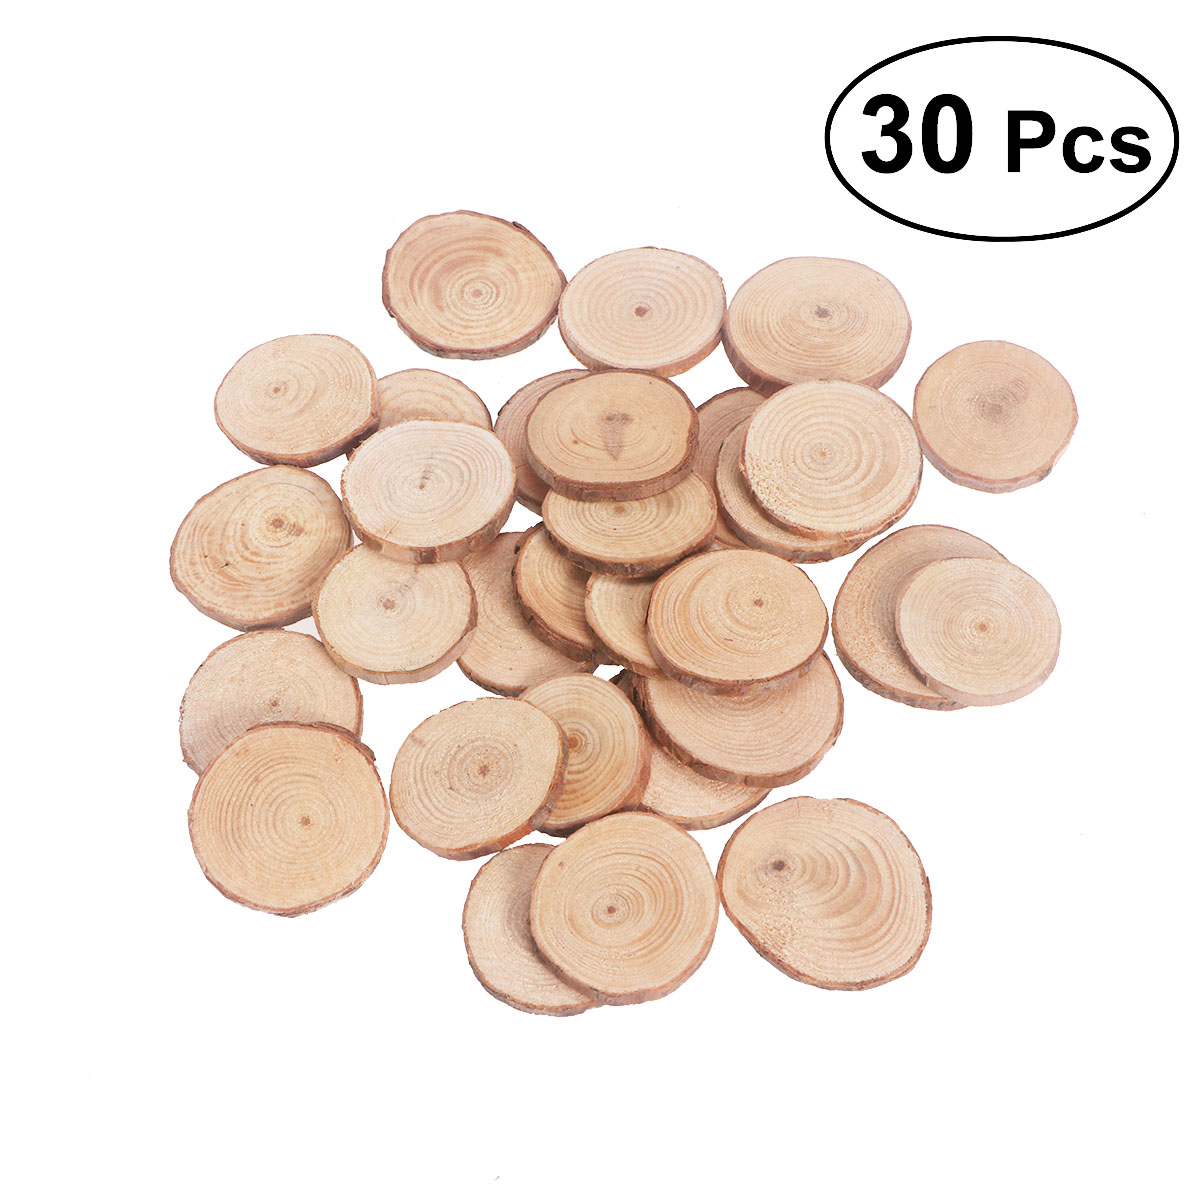 Us 8 07 40 Off 30pcs 4 5cm Wood Log Slices Discs Round Natural Rustic Wood Crafts Tags Wedding Diy Decorations Wooden Craft Supplies Ornaments In